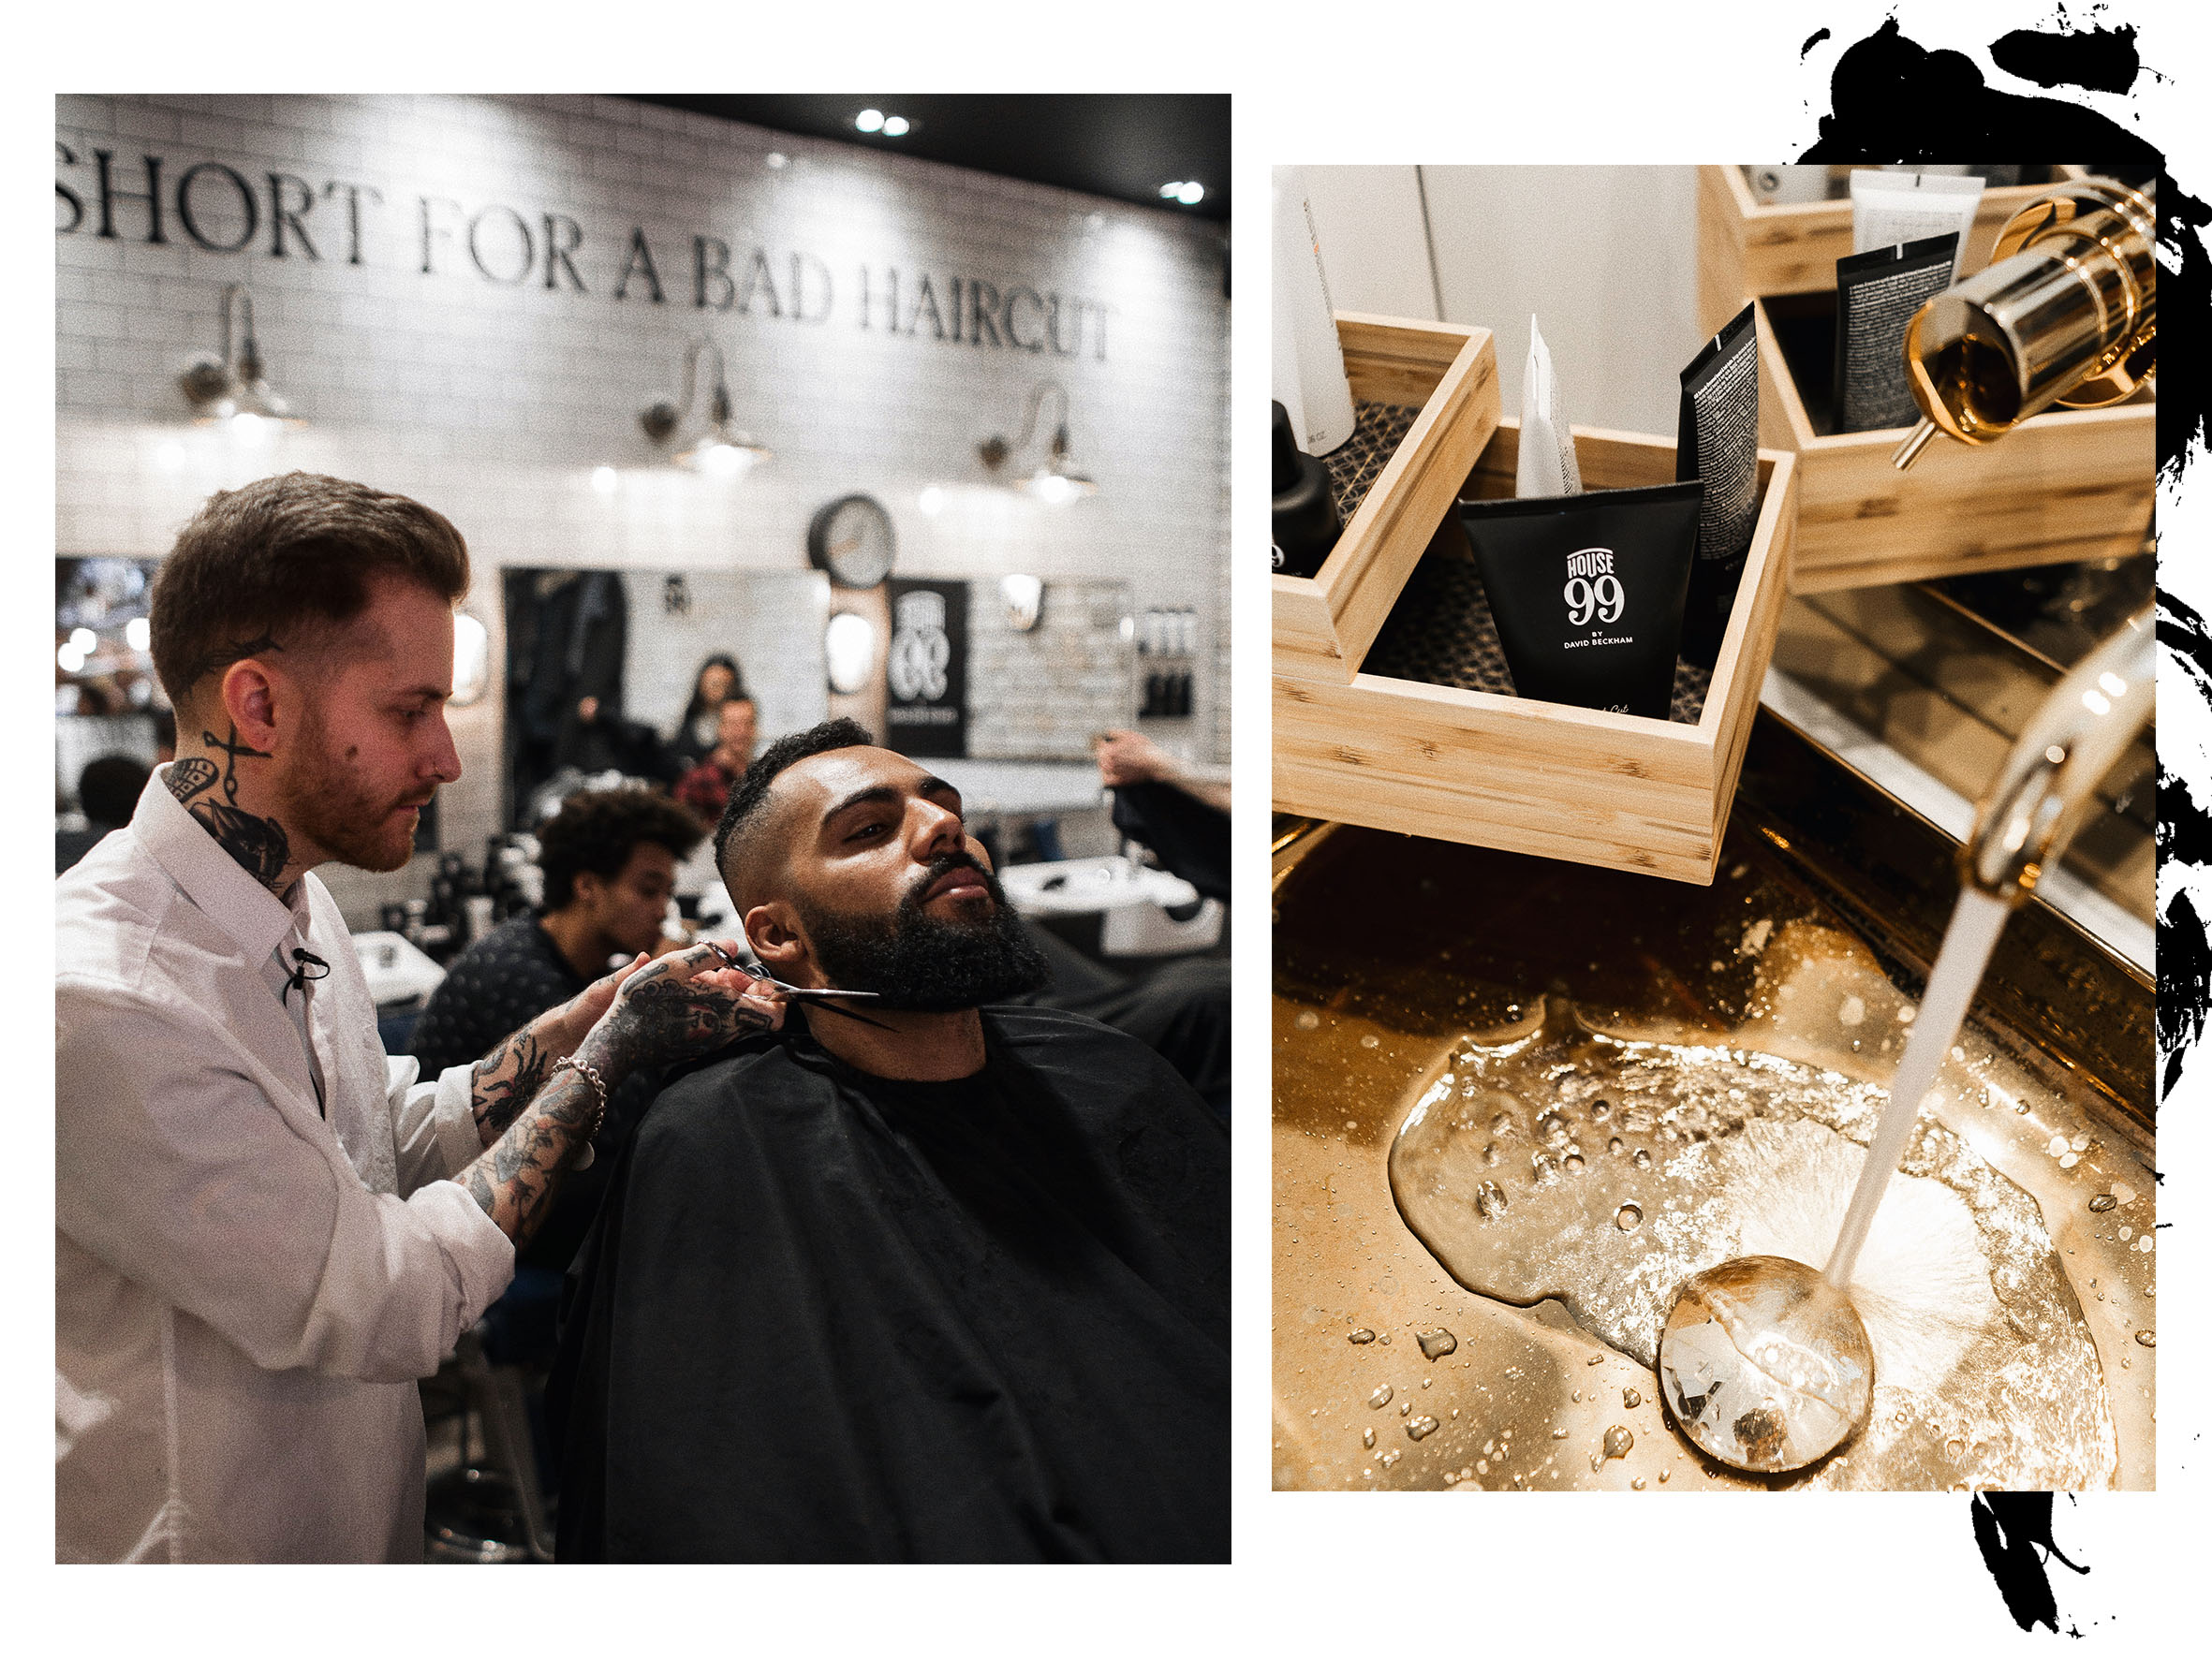 Grooming Session at the House 99 Launch with New Kiss on the Blog